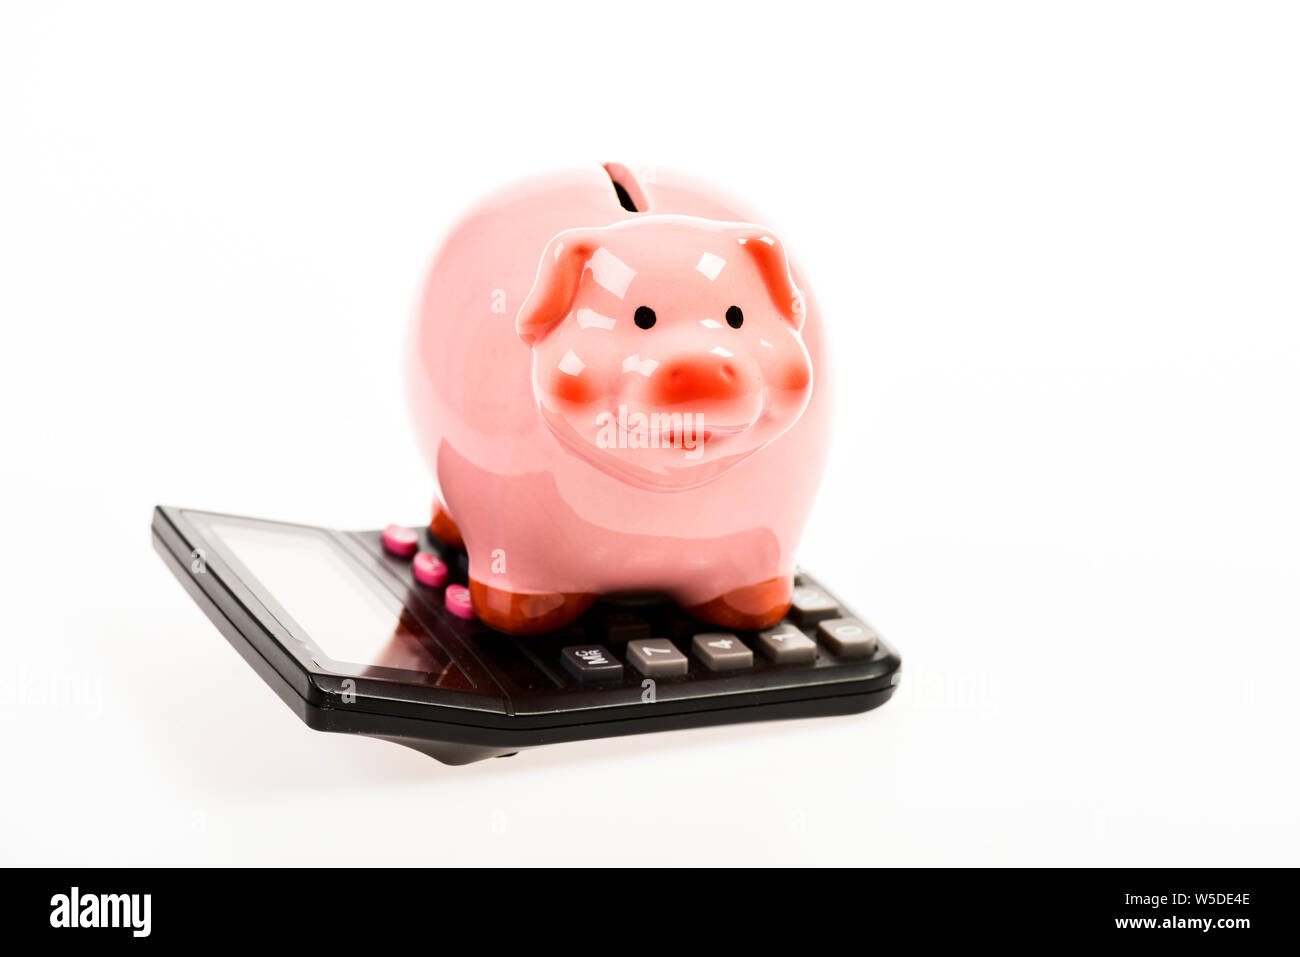 bookkeeping. financial problem. moneybox with calculator. Piggy bank. income capital management. money saving. Accounting and payroll. planning and counting budget. Business expert. Stock Photo